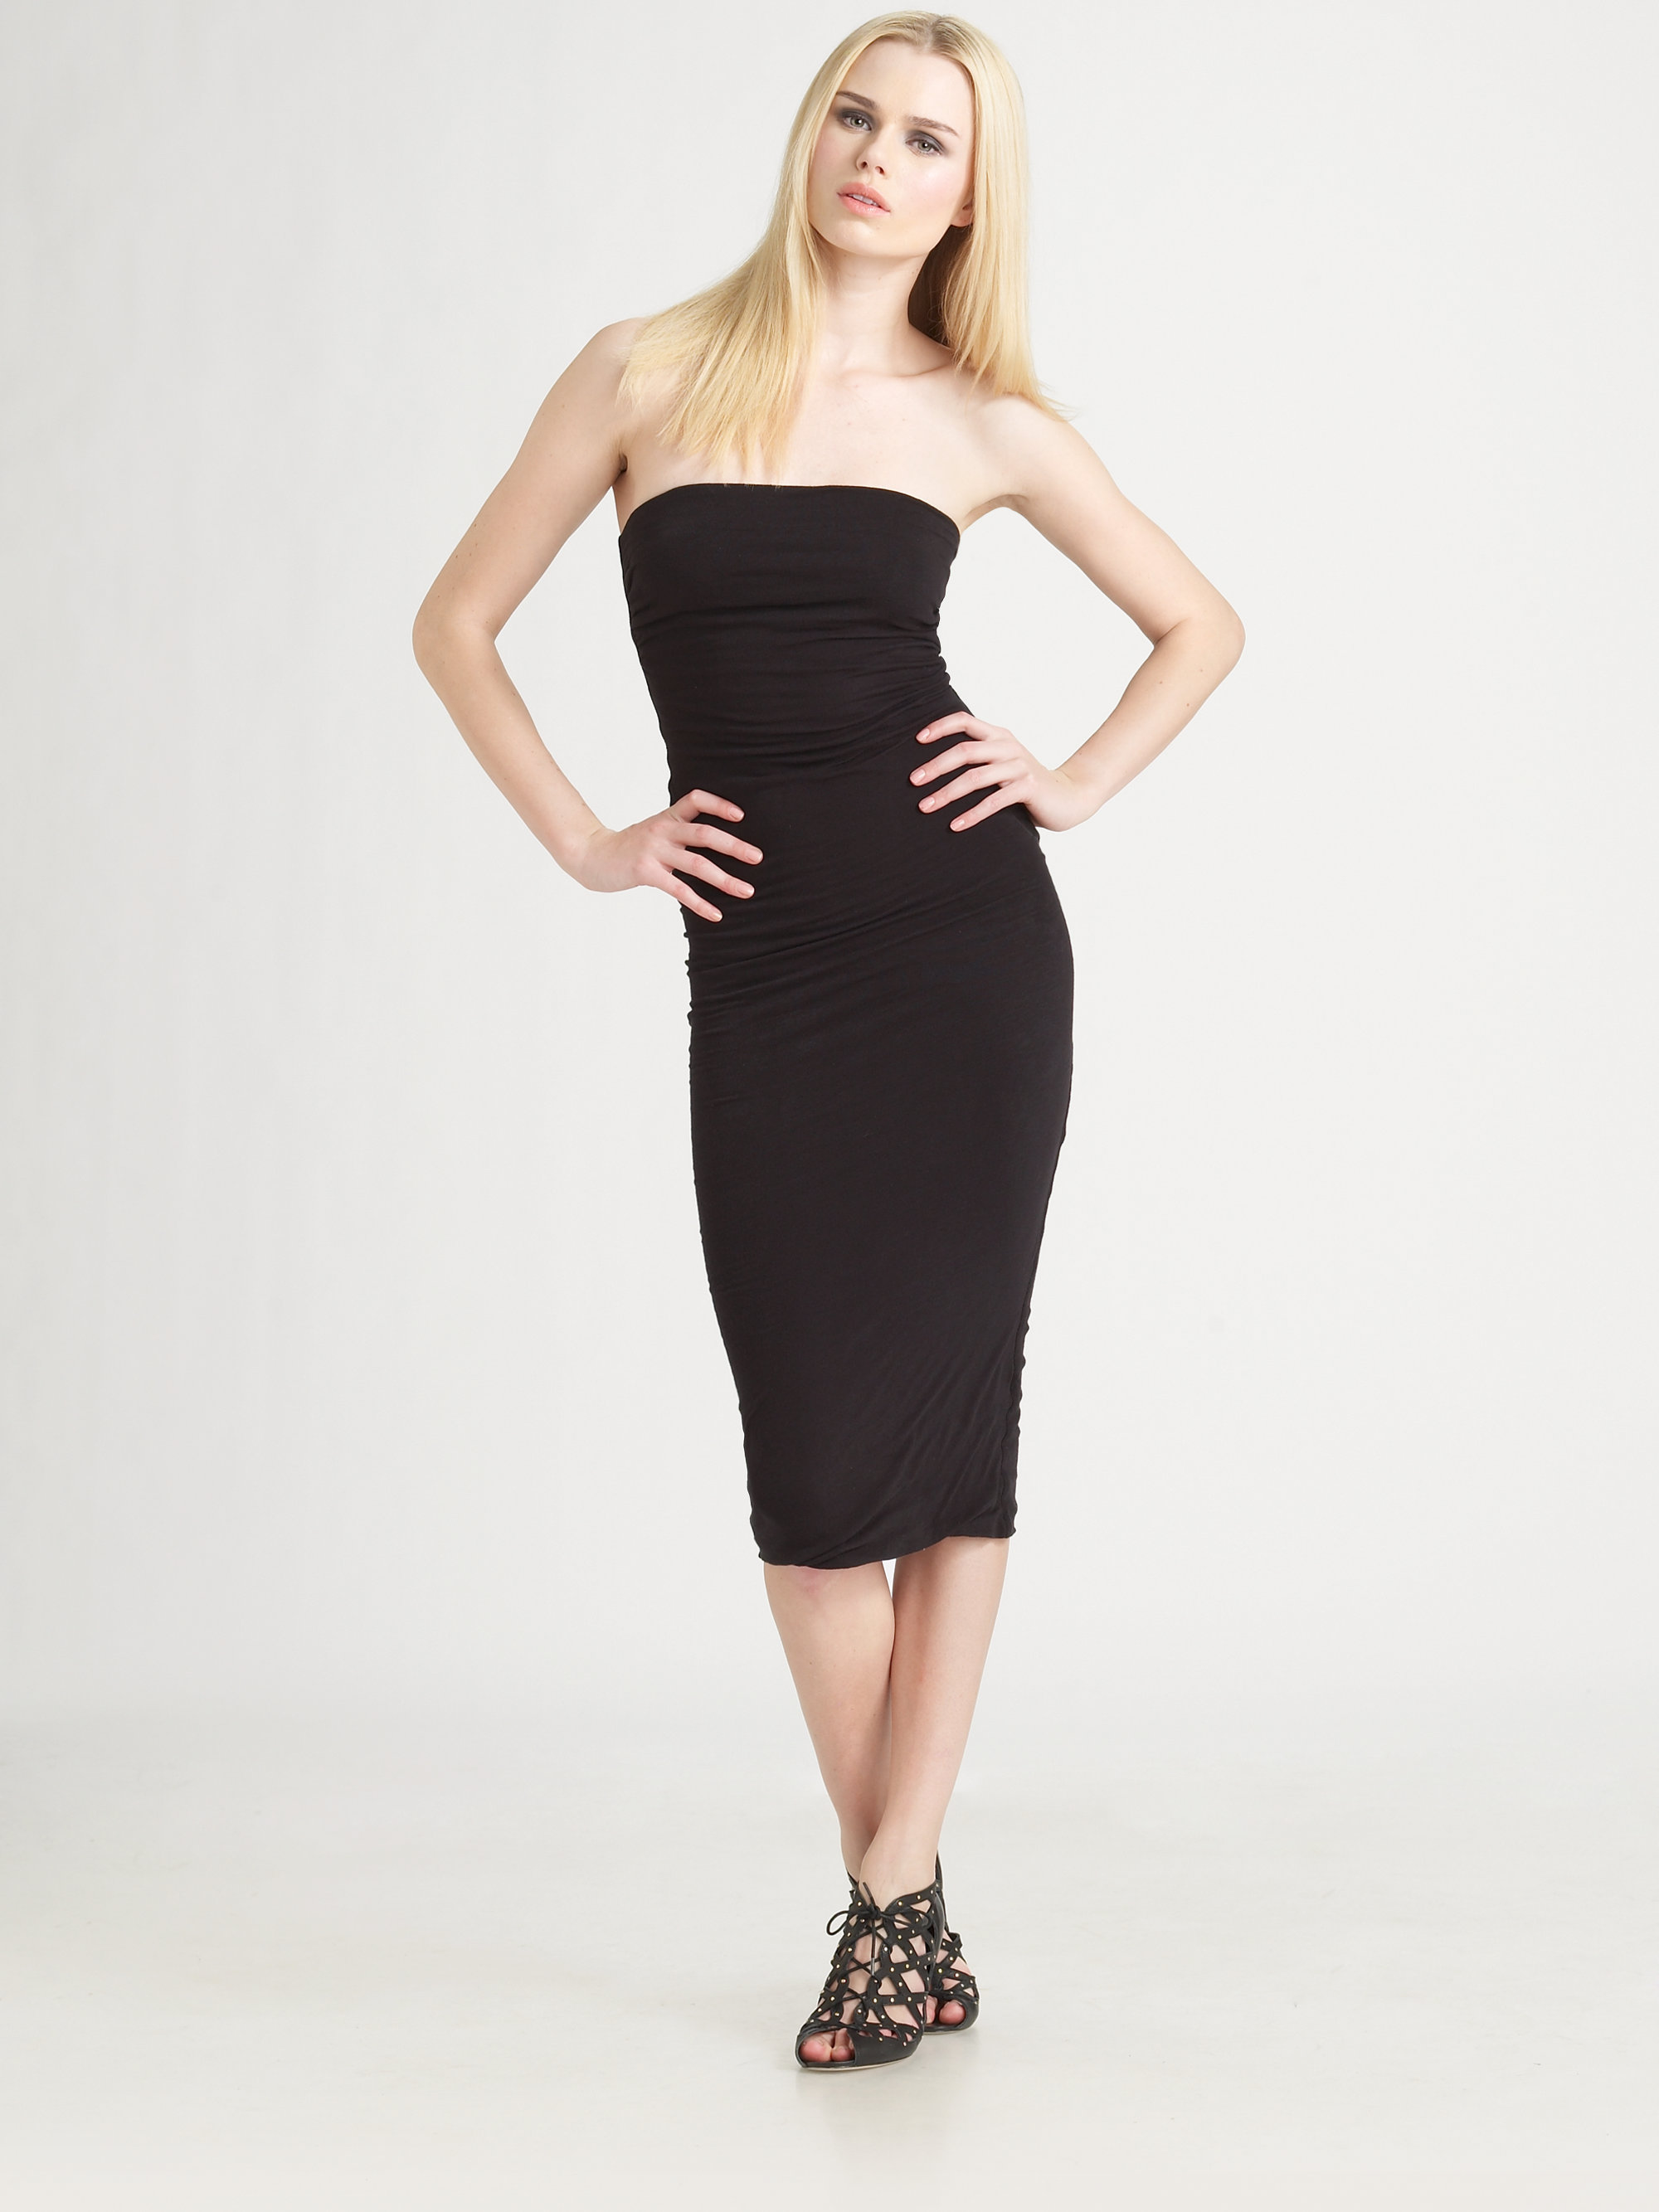 Bebe Strapless Tube Top Midi Dress Women's Dress. Stop everyone in their tracks with your look in the bebe Strapless Tube Top Midi downloadsolutionspa5tr.gqess midi dress offers a fit look. Straight hemline. Back zipper closure. Unlined. 95% polyester 5% spandex.